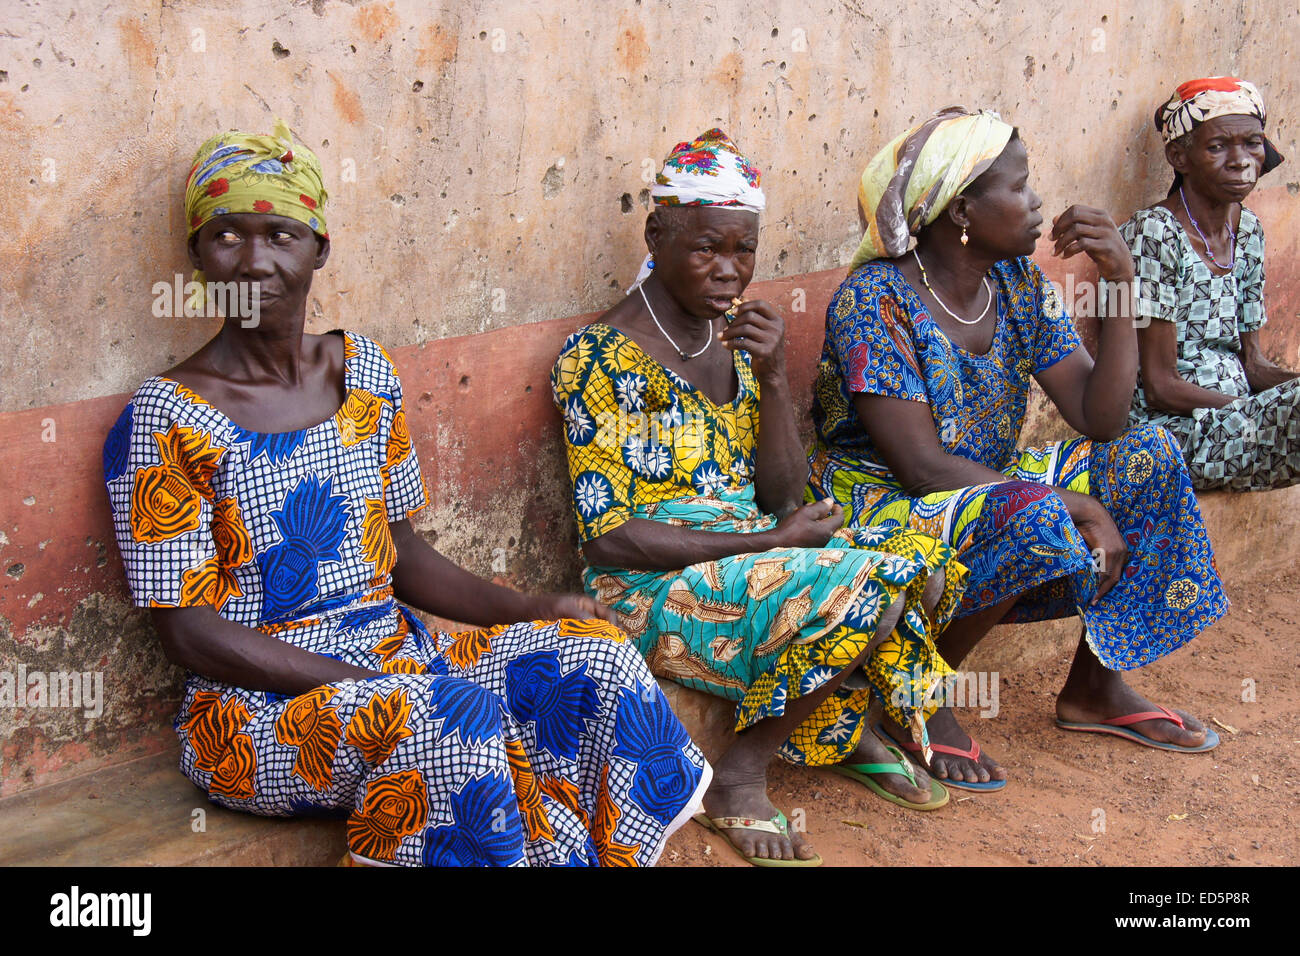 women of ghana -43-the status and role of women in ghana by angela christian one of the first questions that spring to mind when examining the status of women in any given country is whether the women of that particular country.